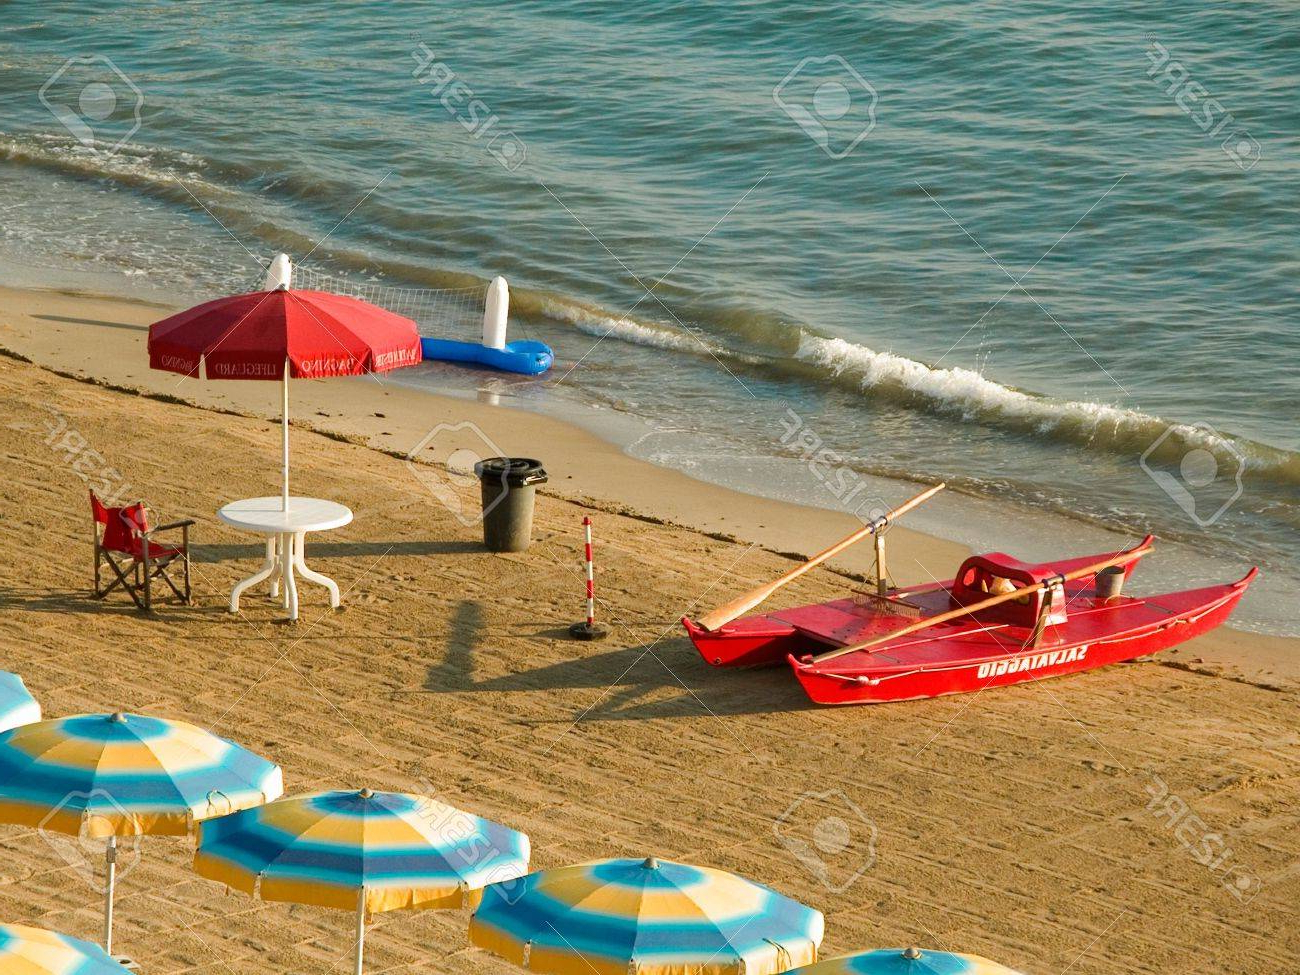 Italian Beach Umbrellas With Regard To 2020 Early Morning Seaside Scene With Umbrellas And Red Lifeguard. (View 14 of 20)